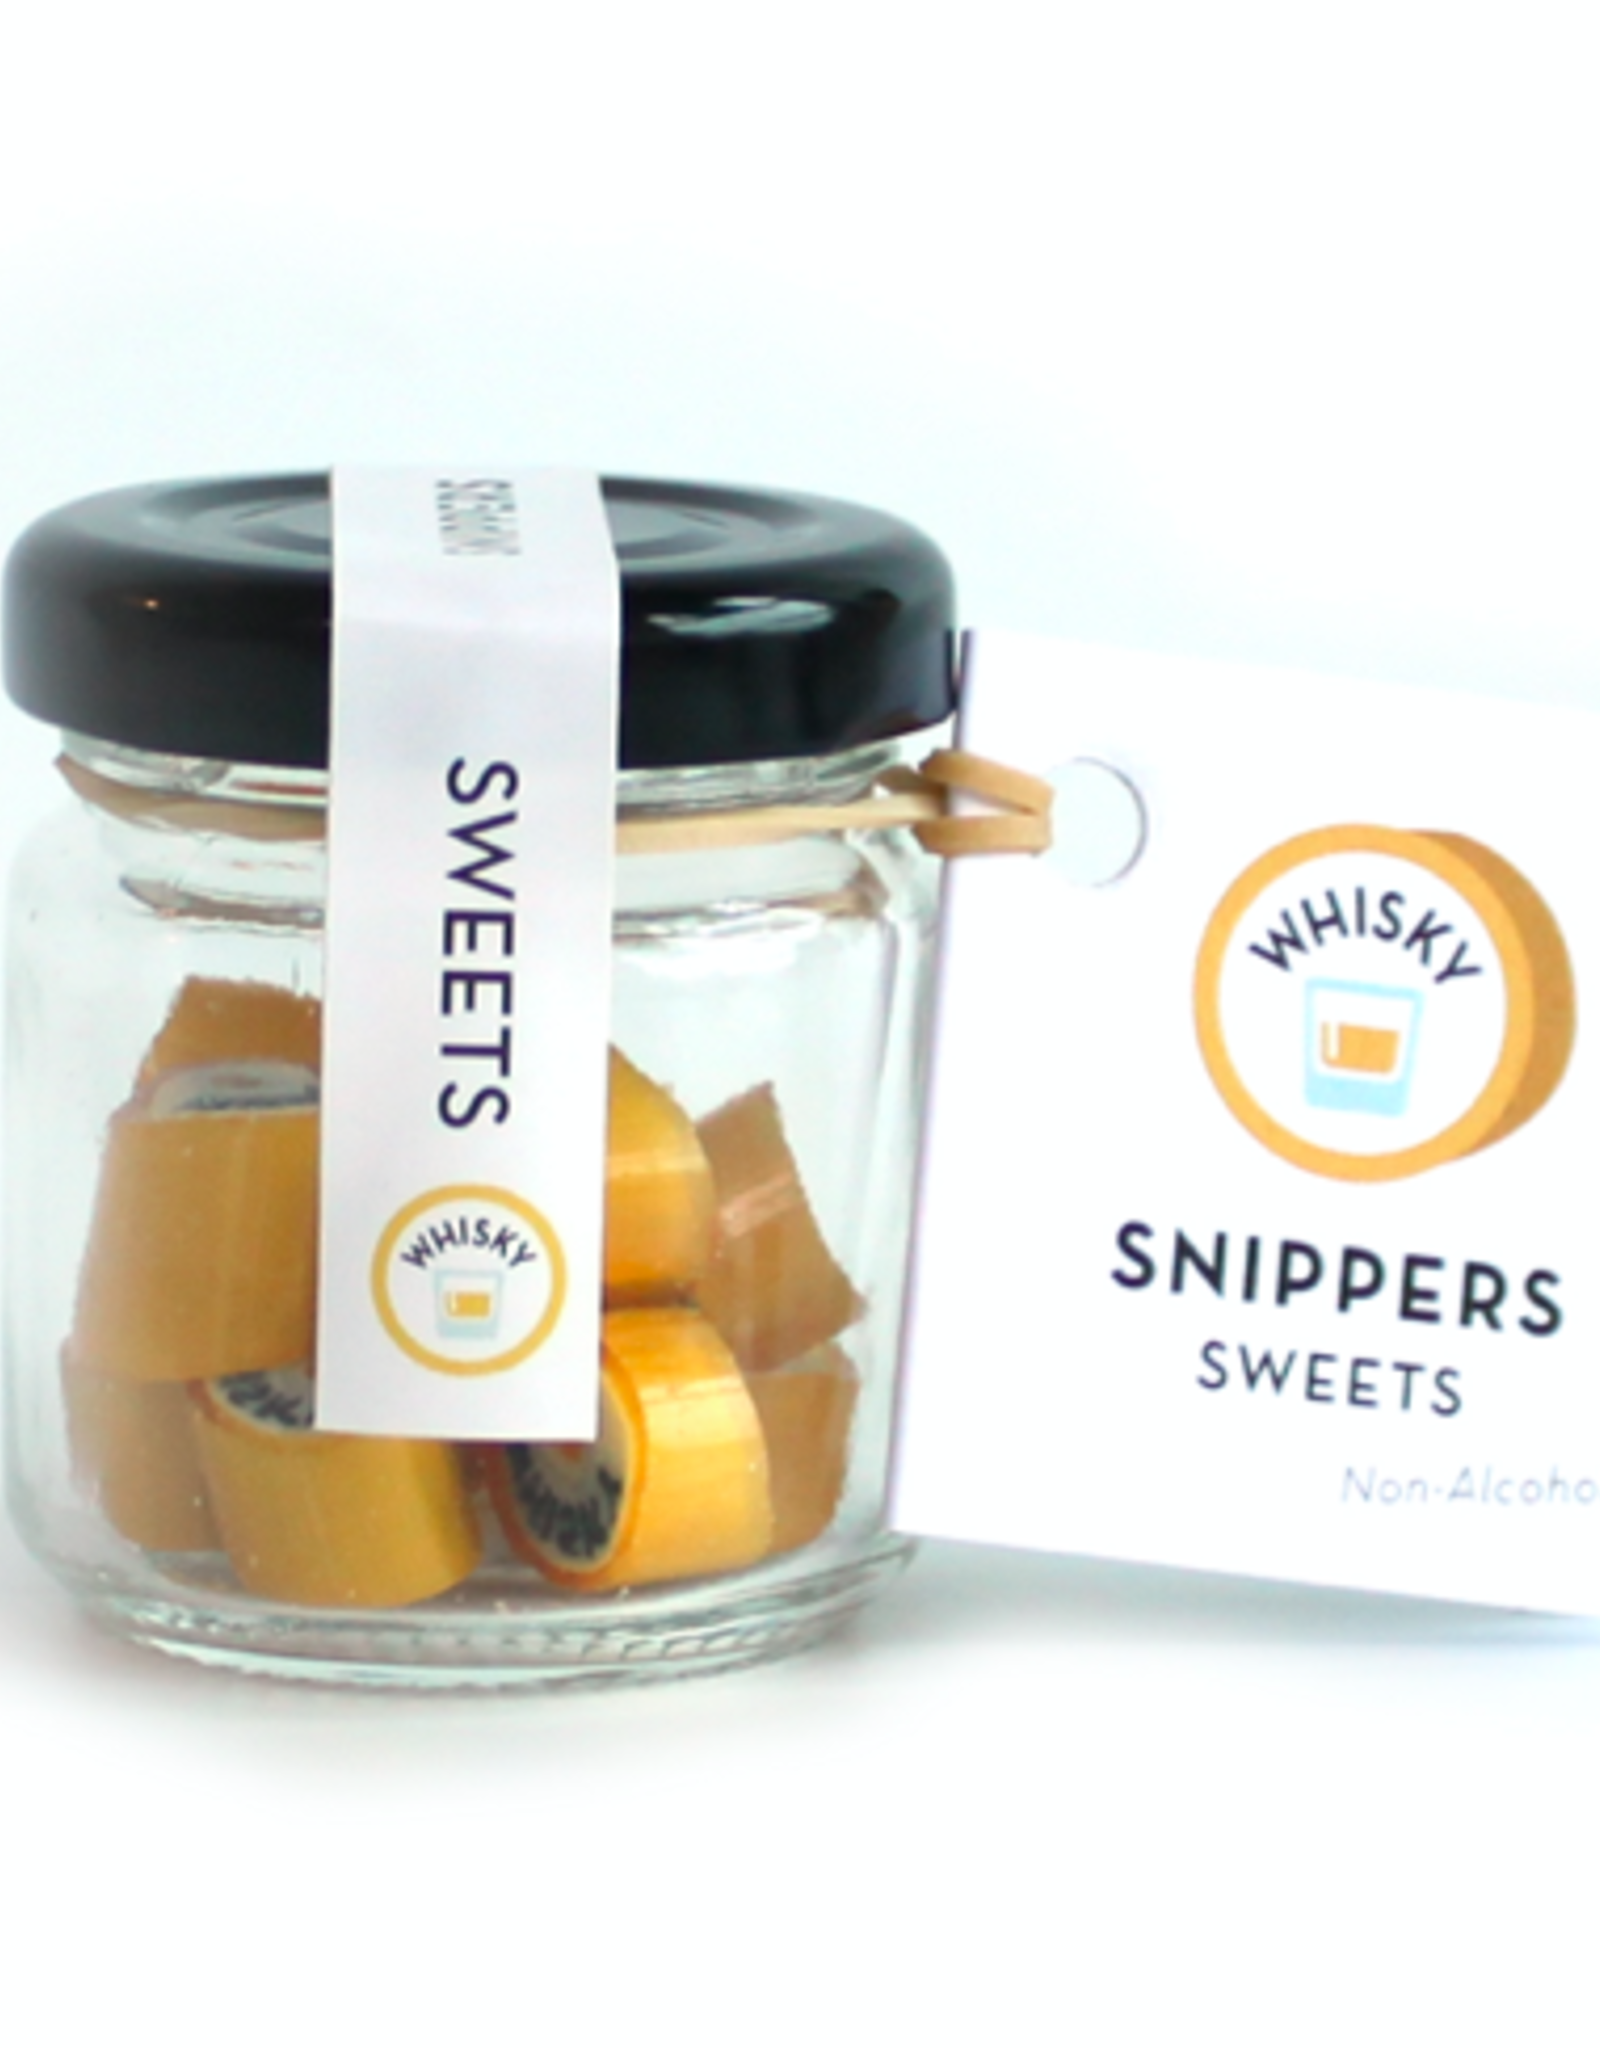 Snippers Sweets Whisky